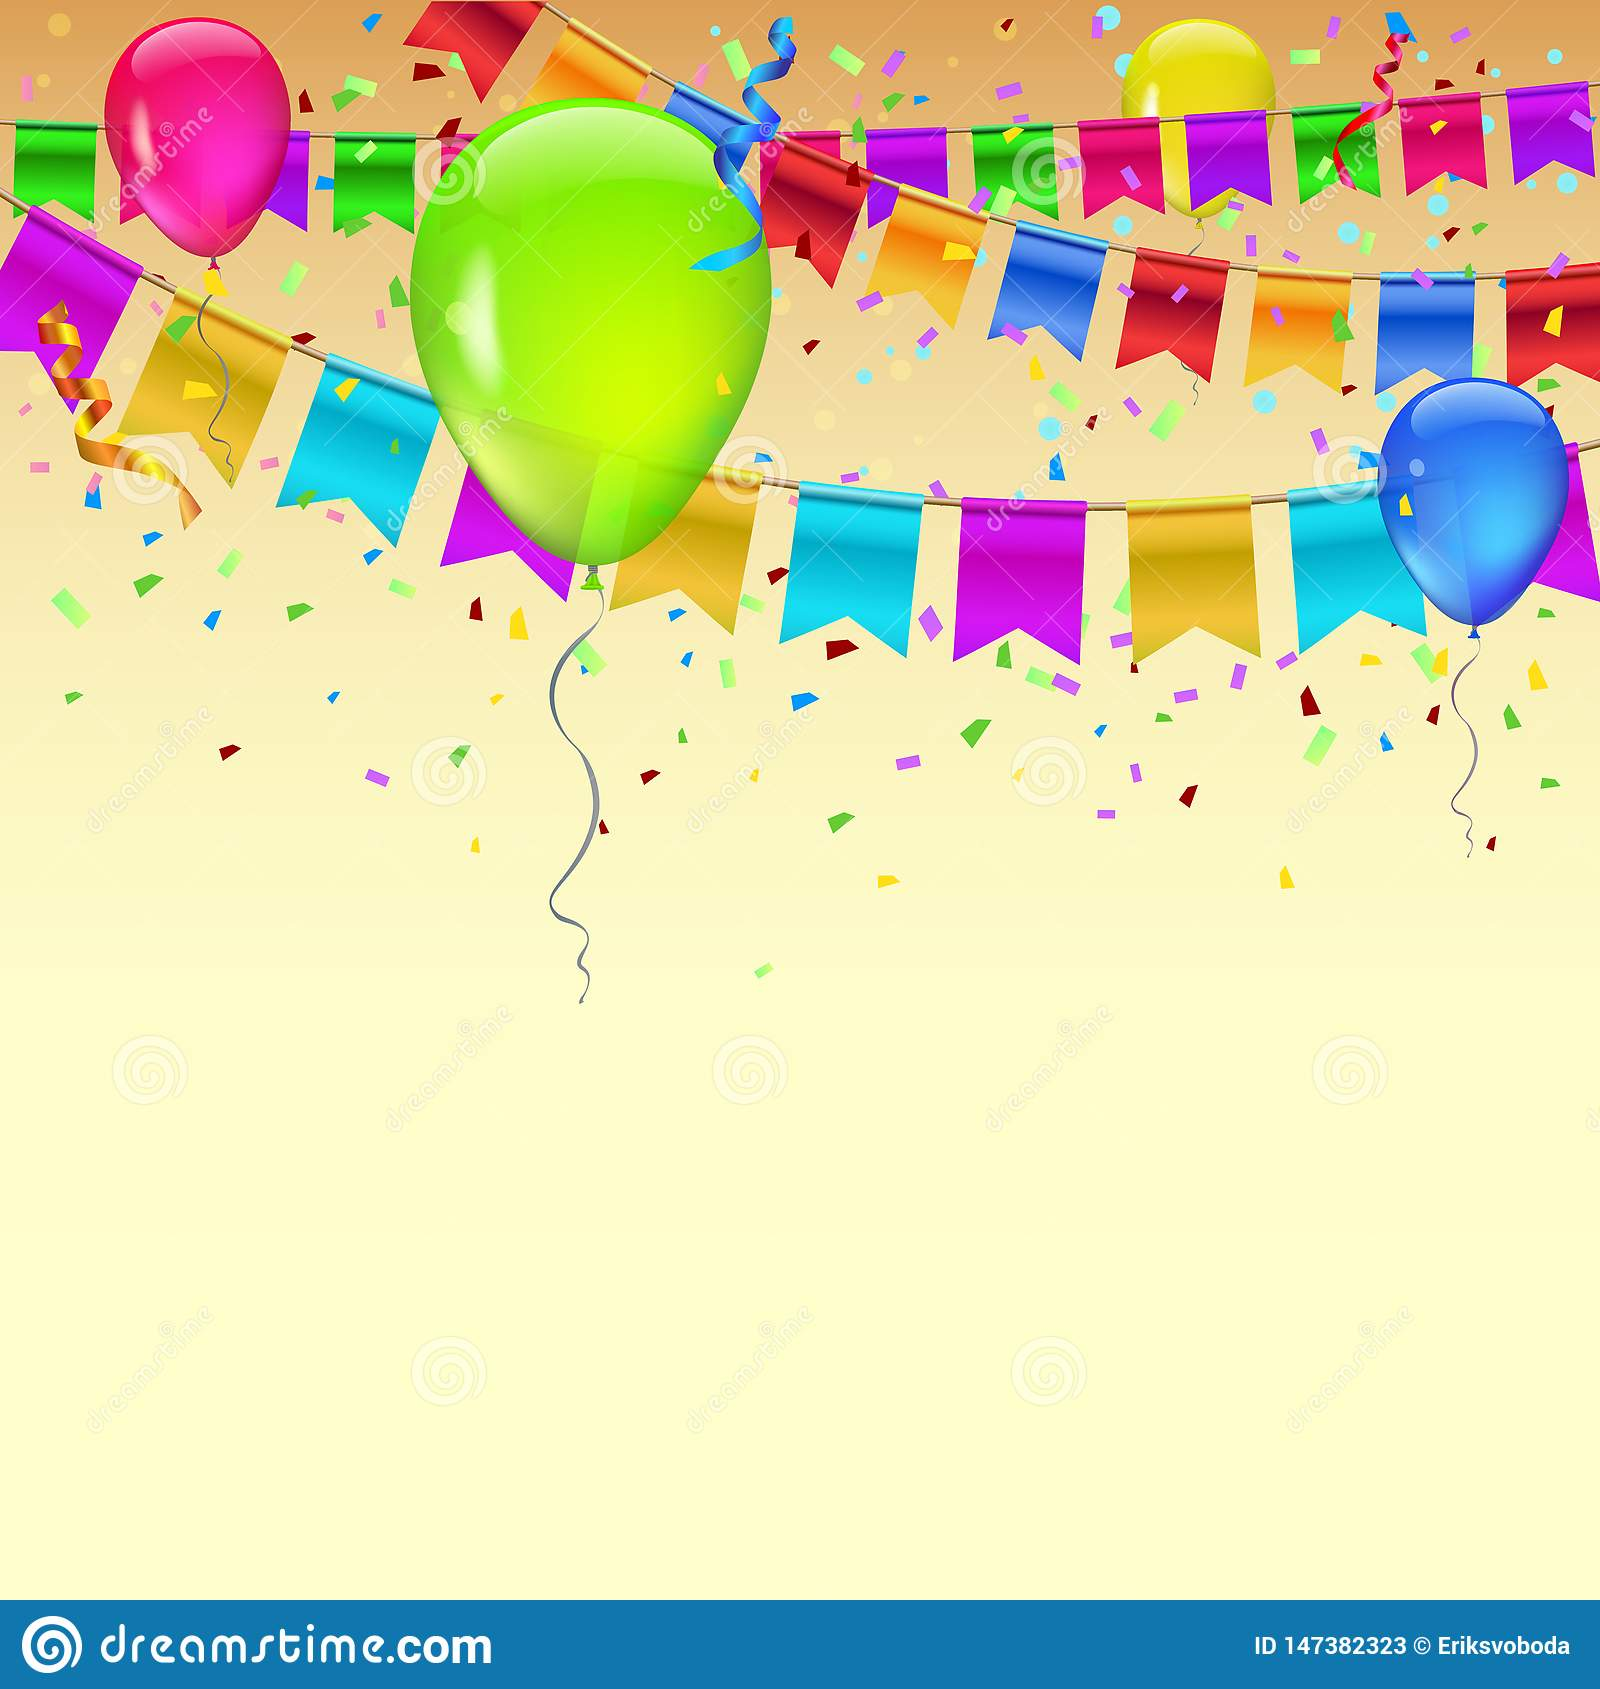 Carnival garland with pennants, confetti and flying balloons. Decorative colorful flags for birthday, festival and fair